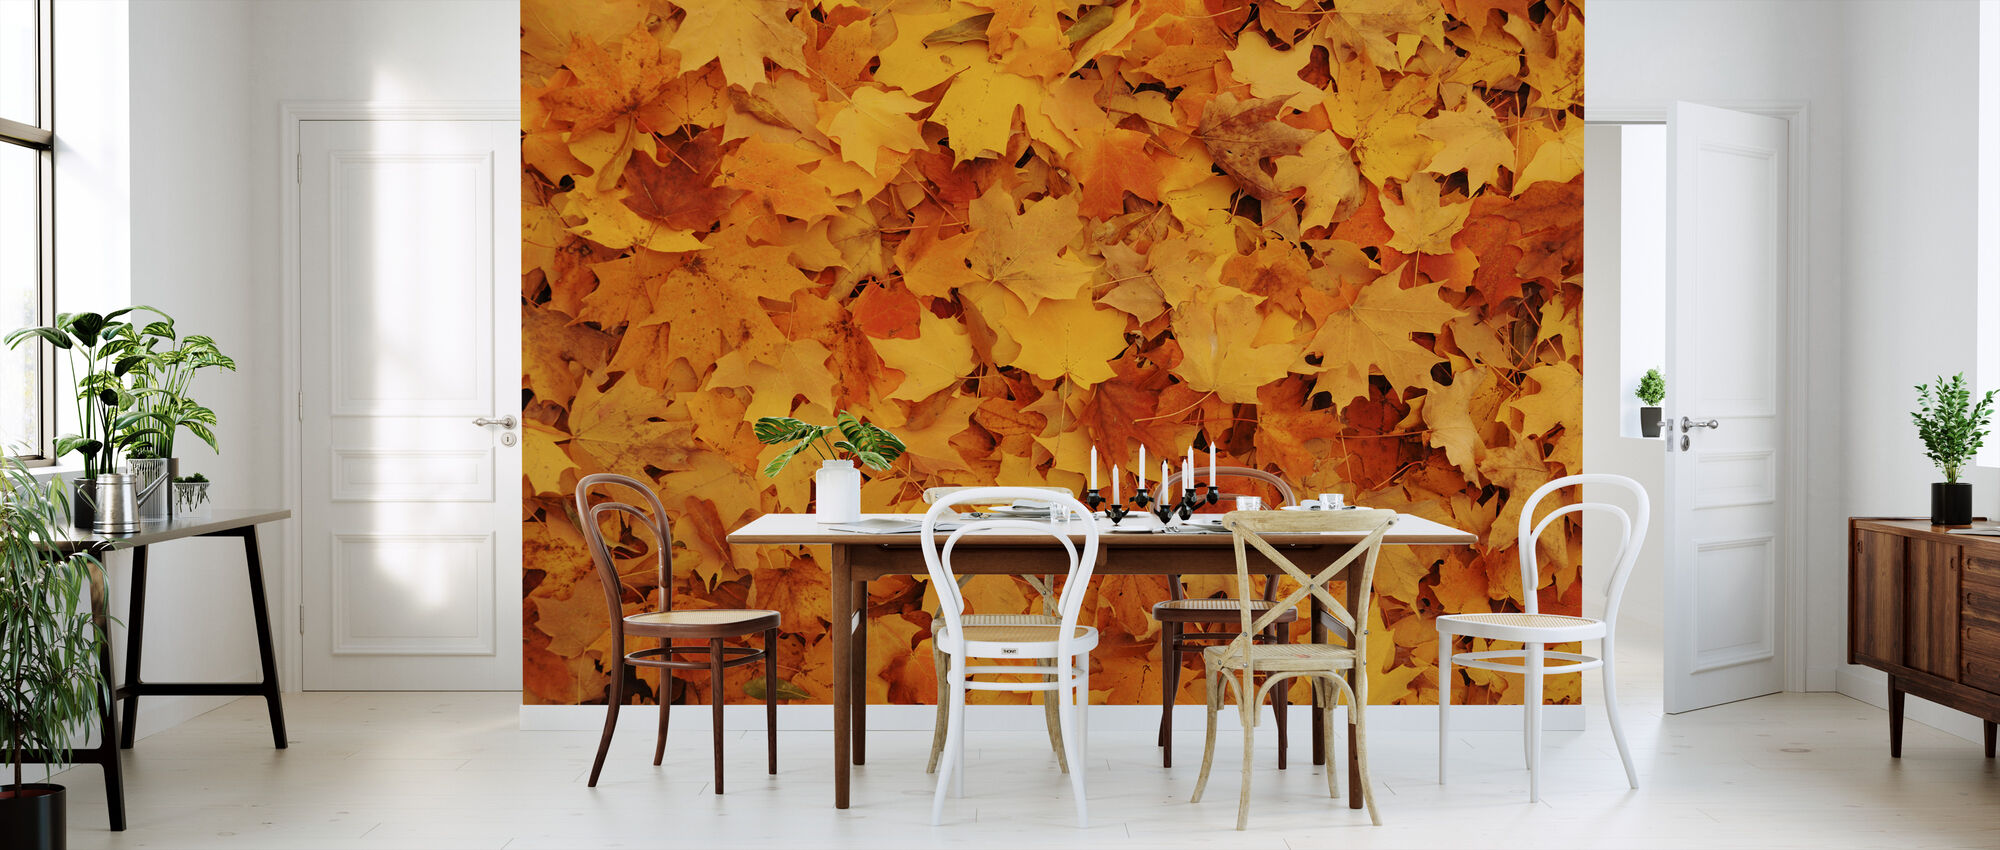 Bed of Autumn Maple Leaves - Wallpaper - Kitchen